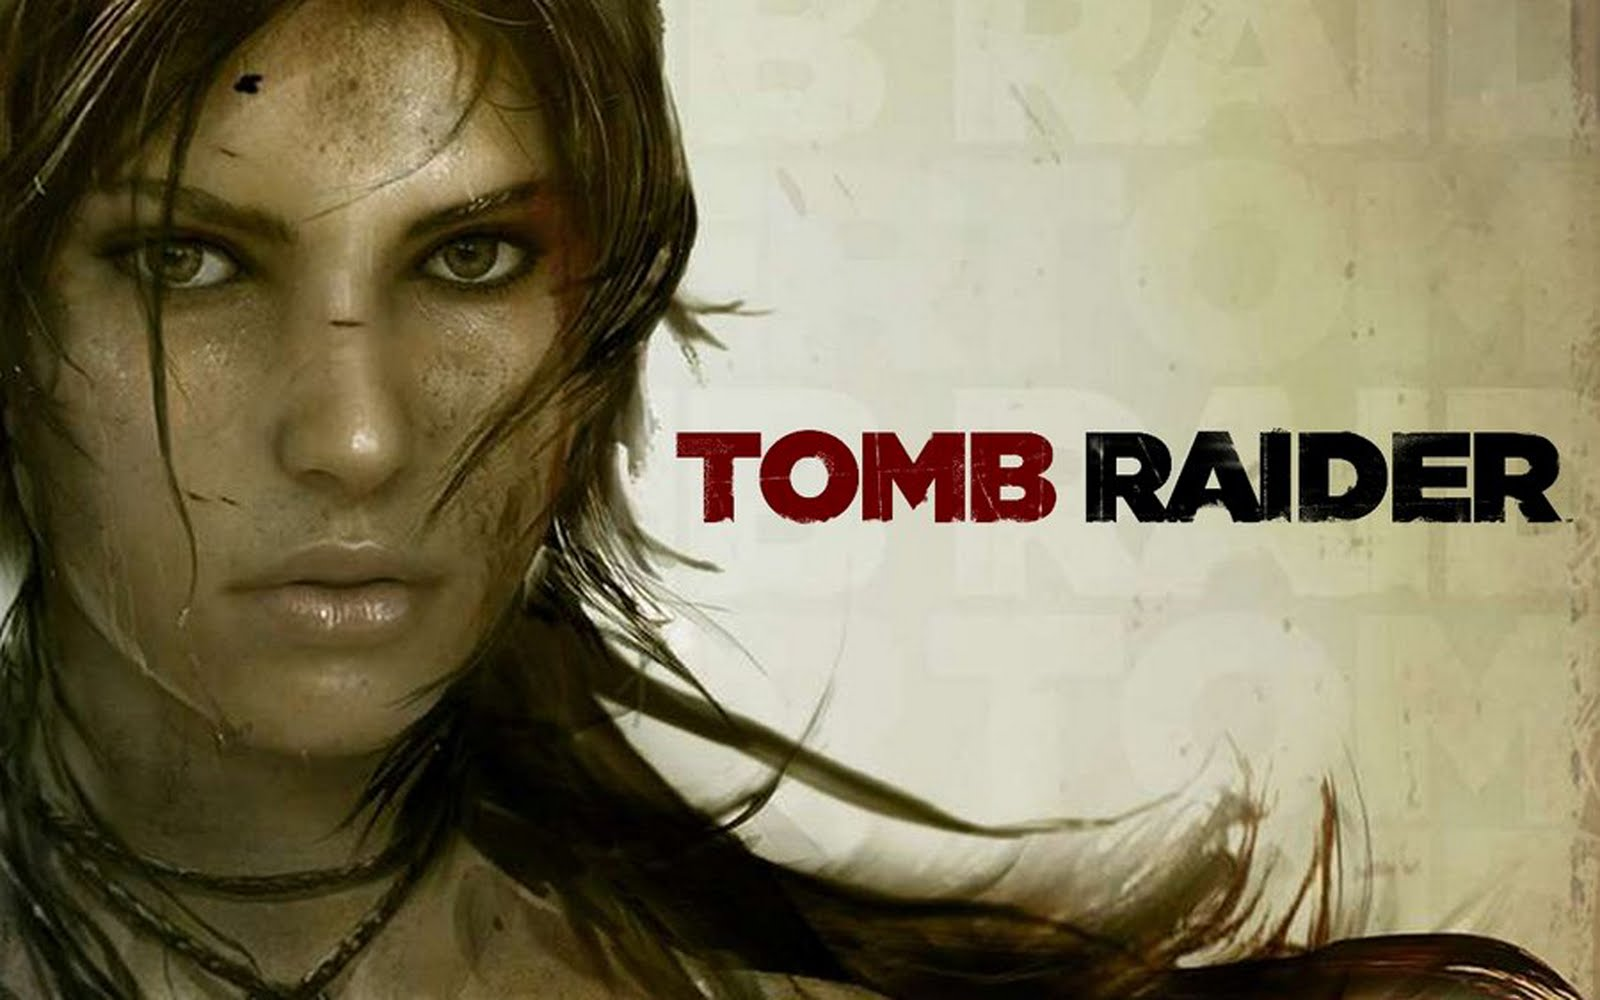 Tomb Raider 2013 Wallpaper: Top 10 Video Game Wallpapers For Lady Gamers (And Gamers